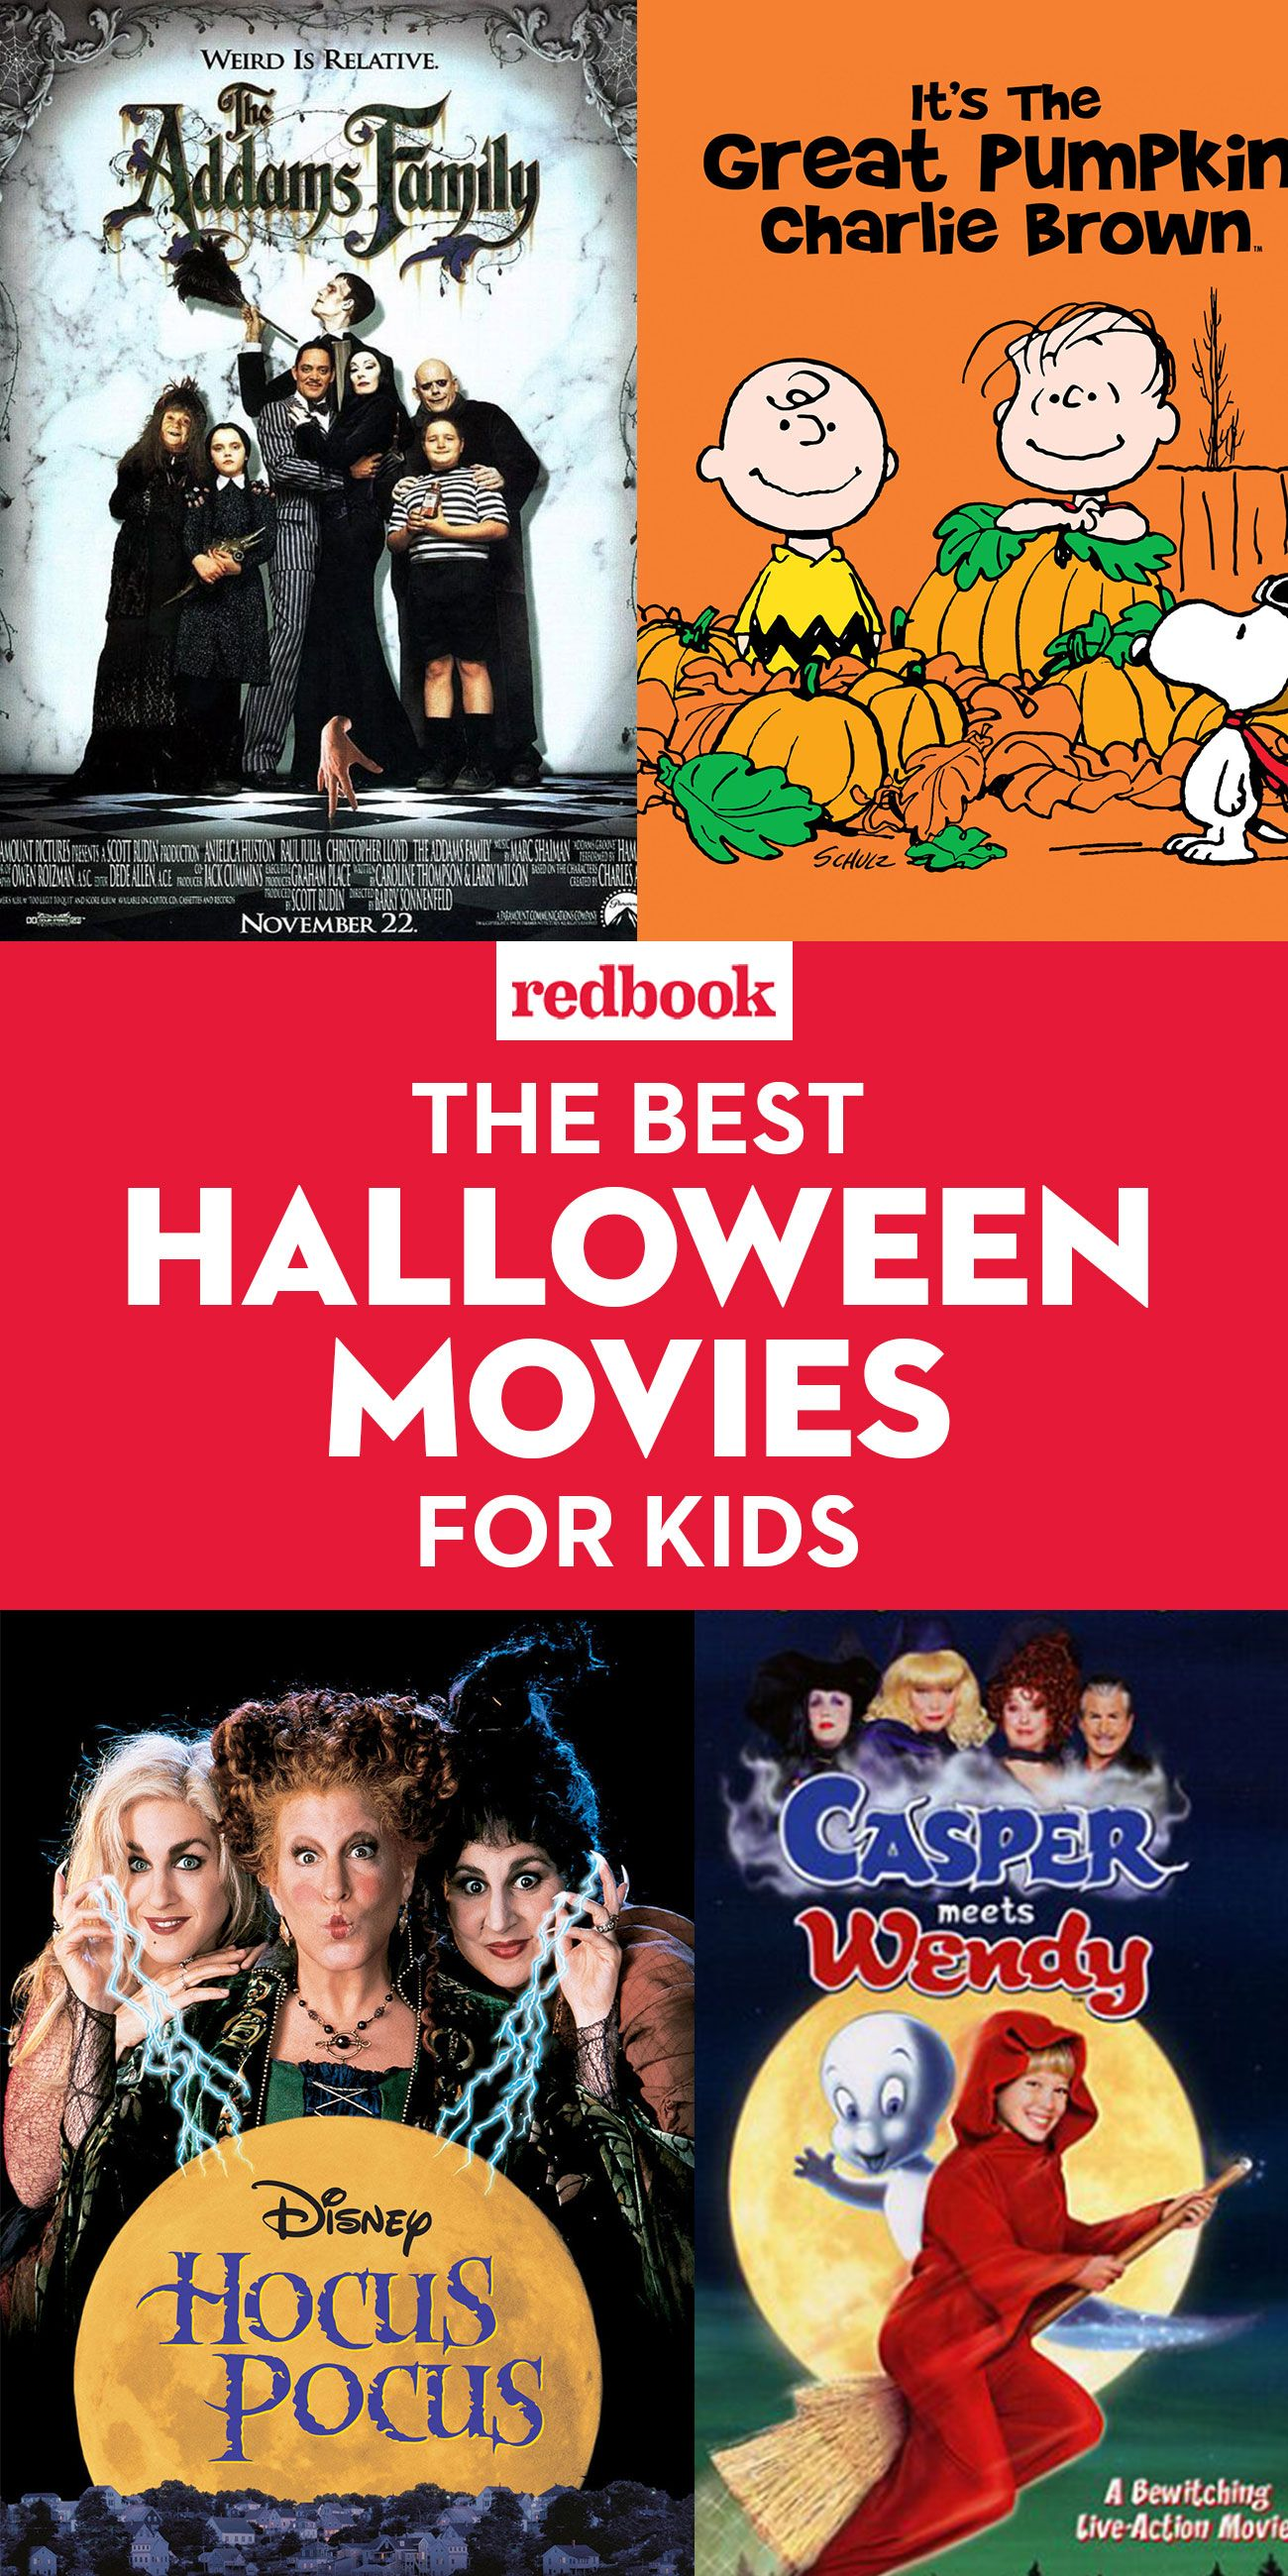 34 Best Halloween Movies for Kids - Family Halloween Movies